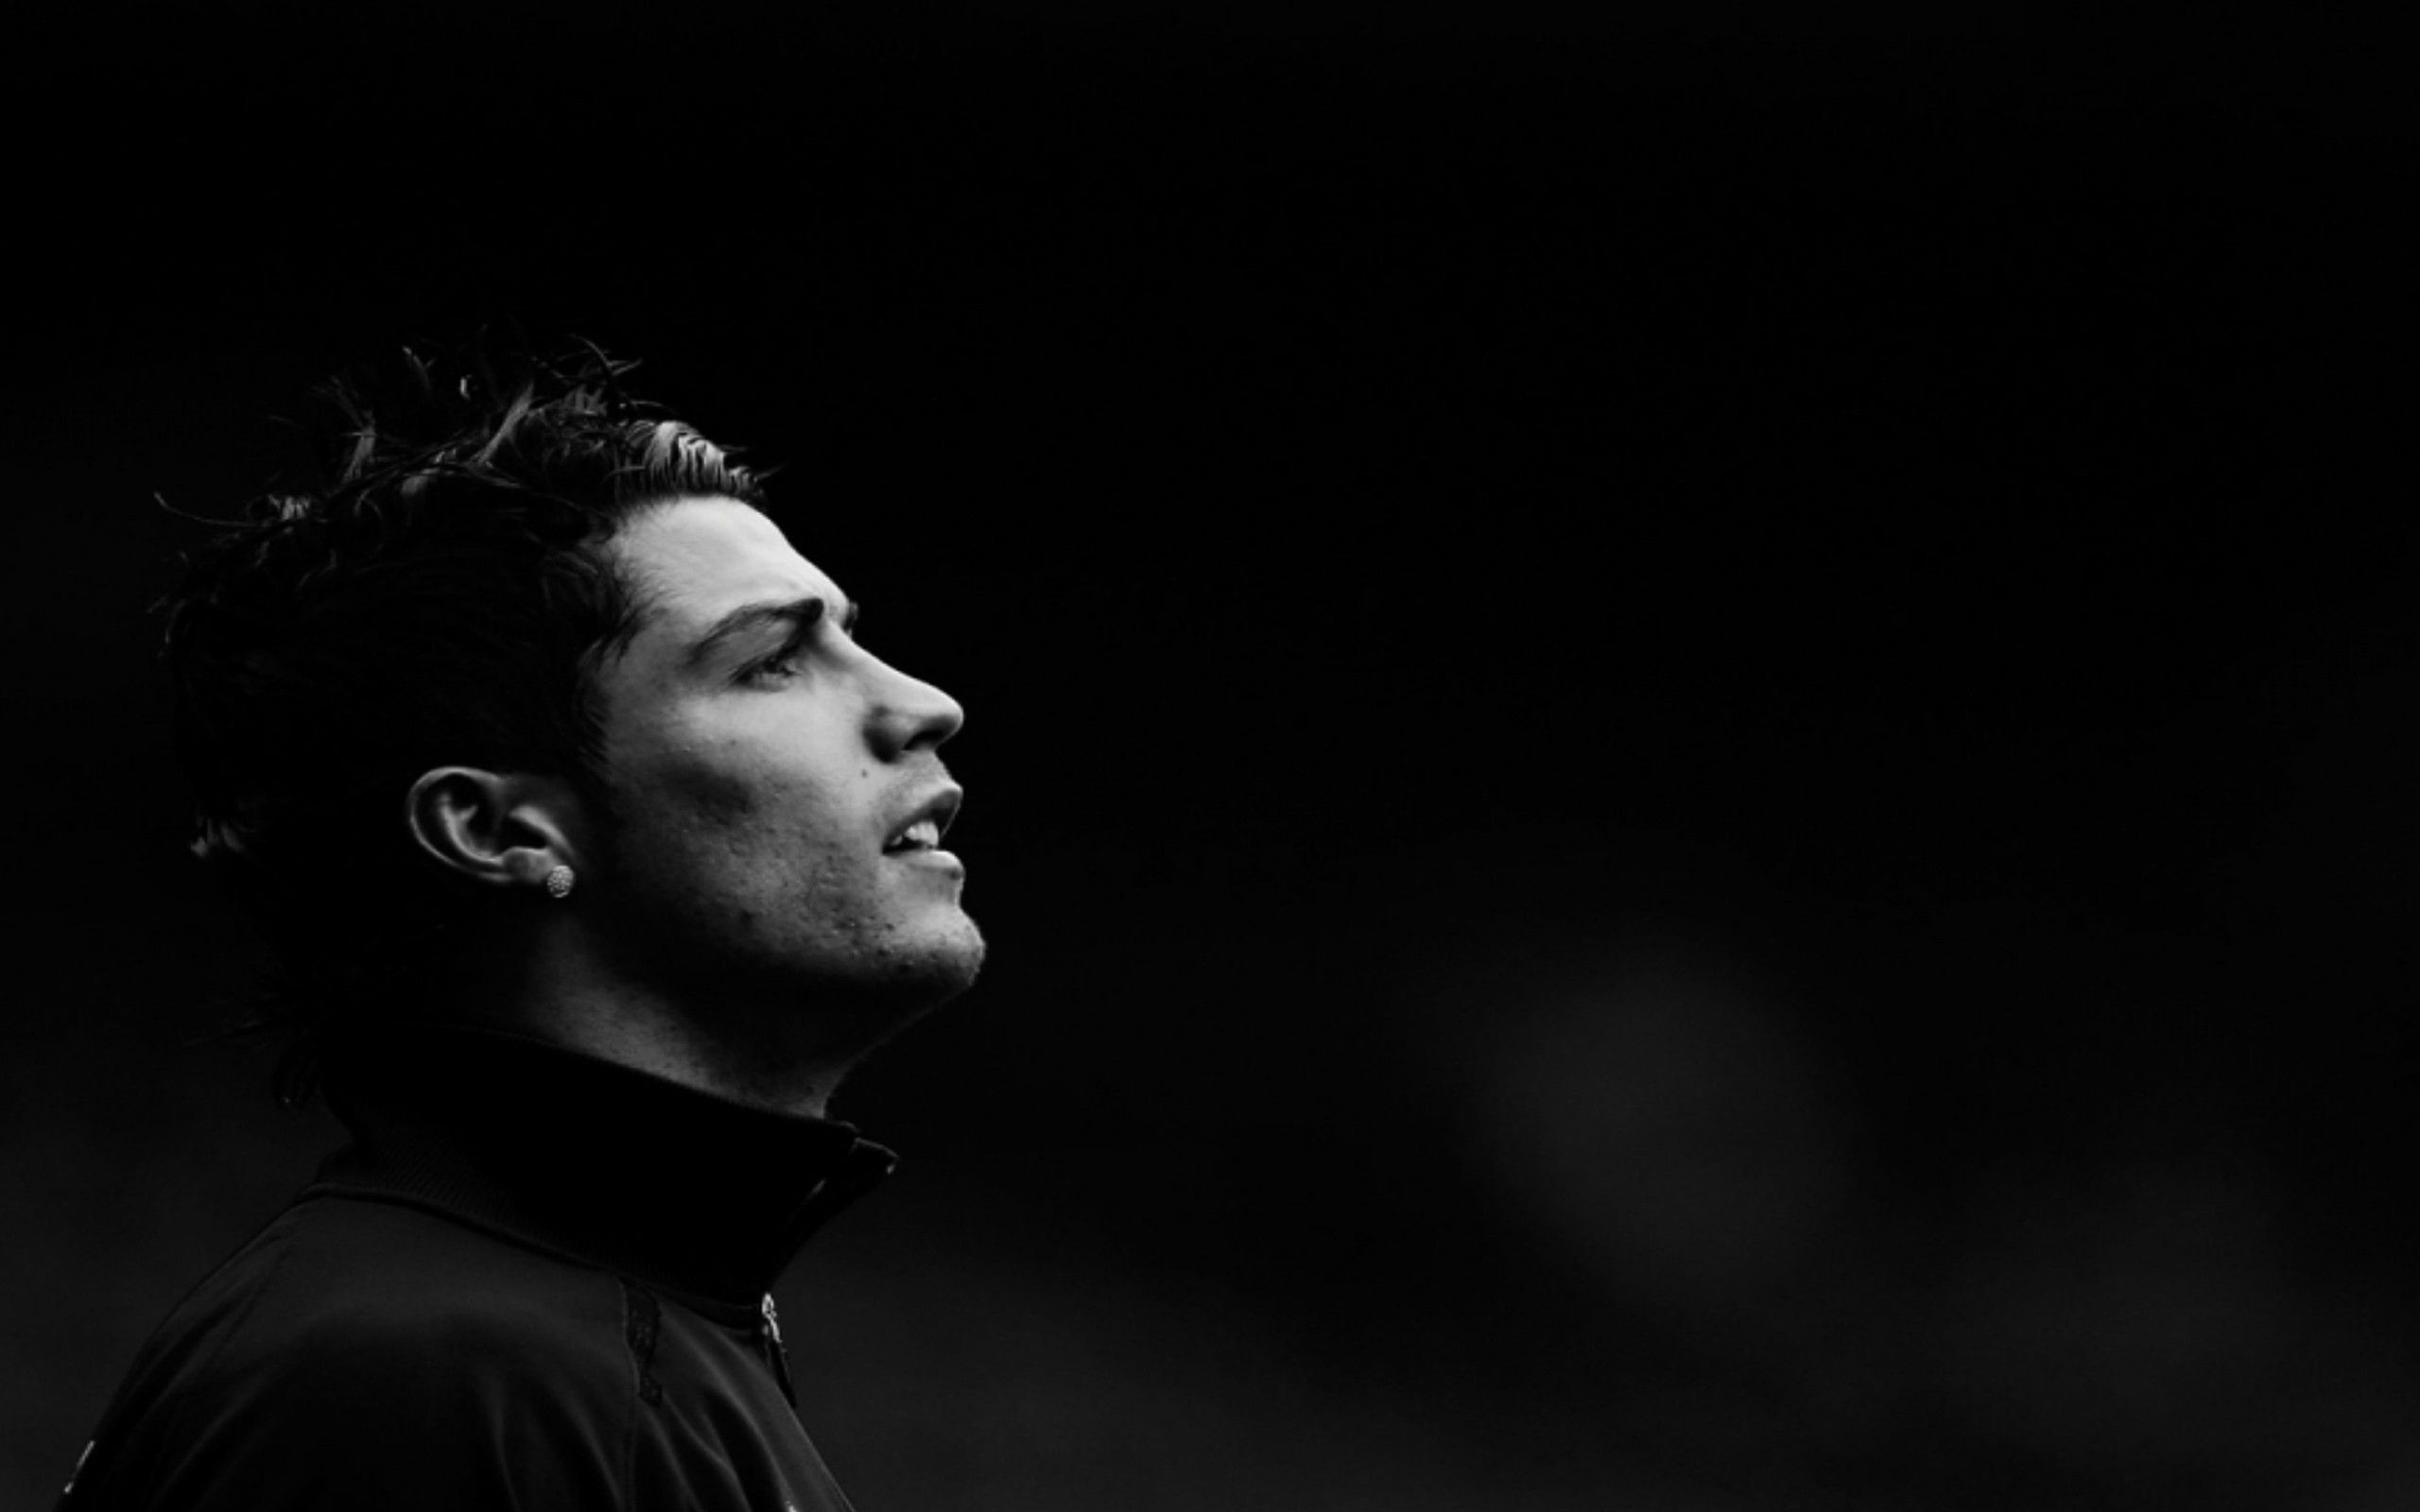 Wallpapers De Cristiano Ronaldo: Ronaldo Wallpapers, Pictures, Images